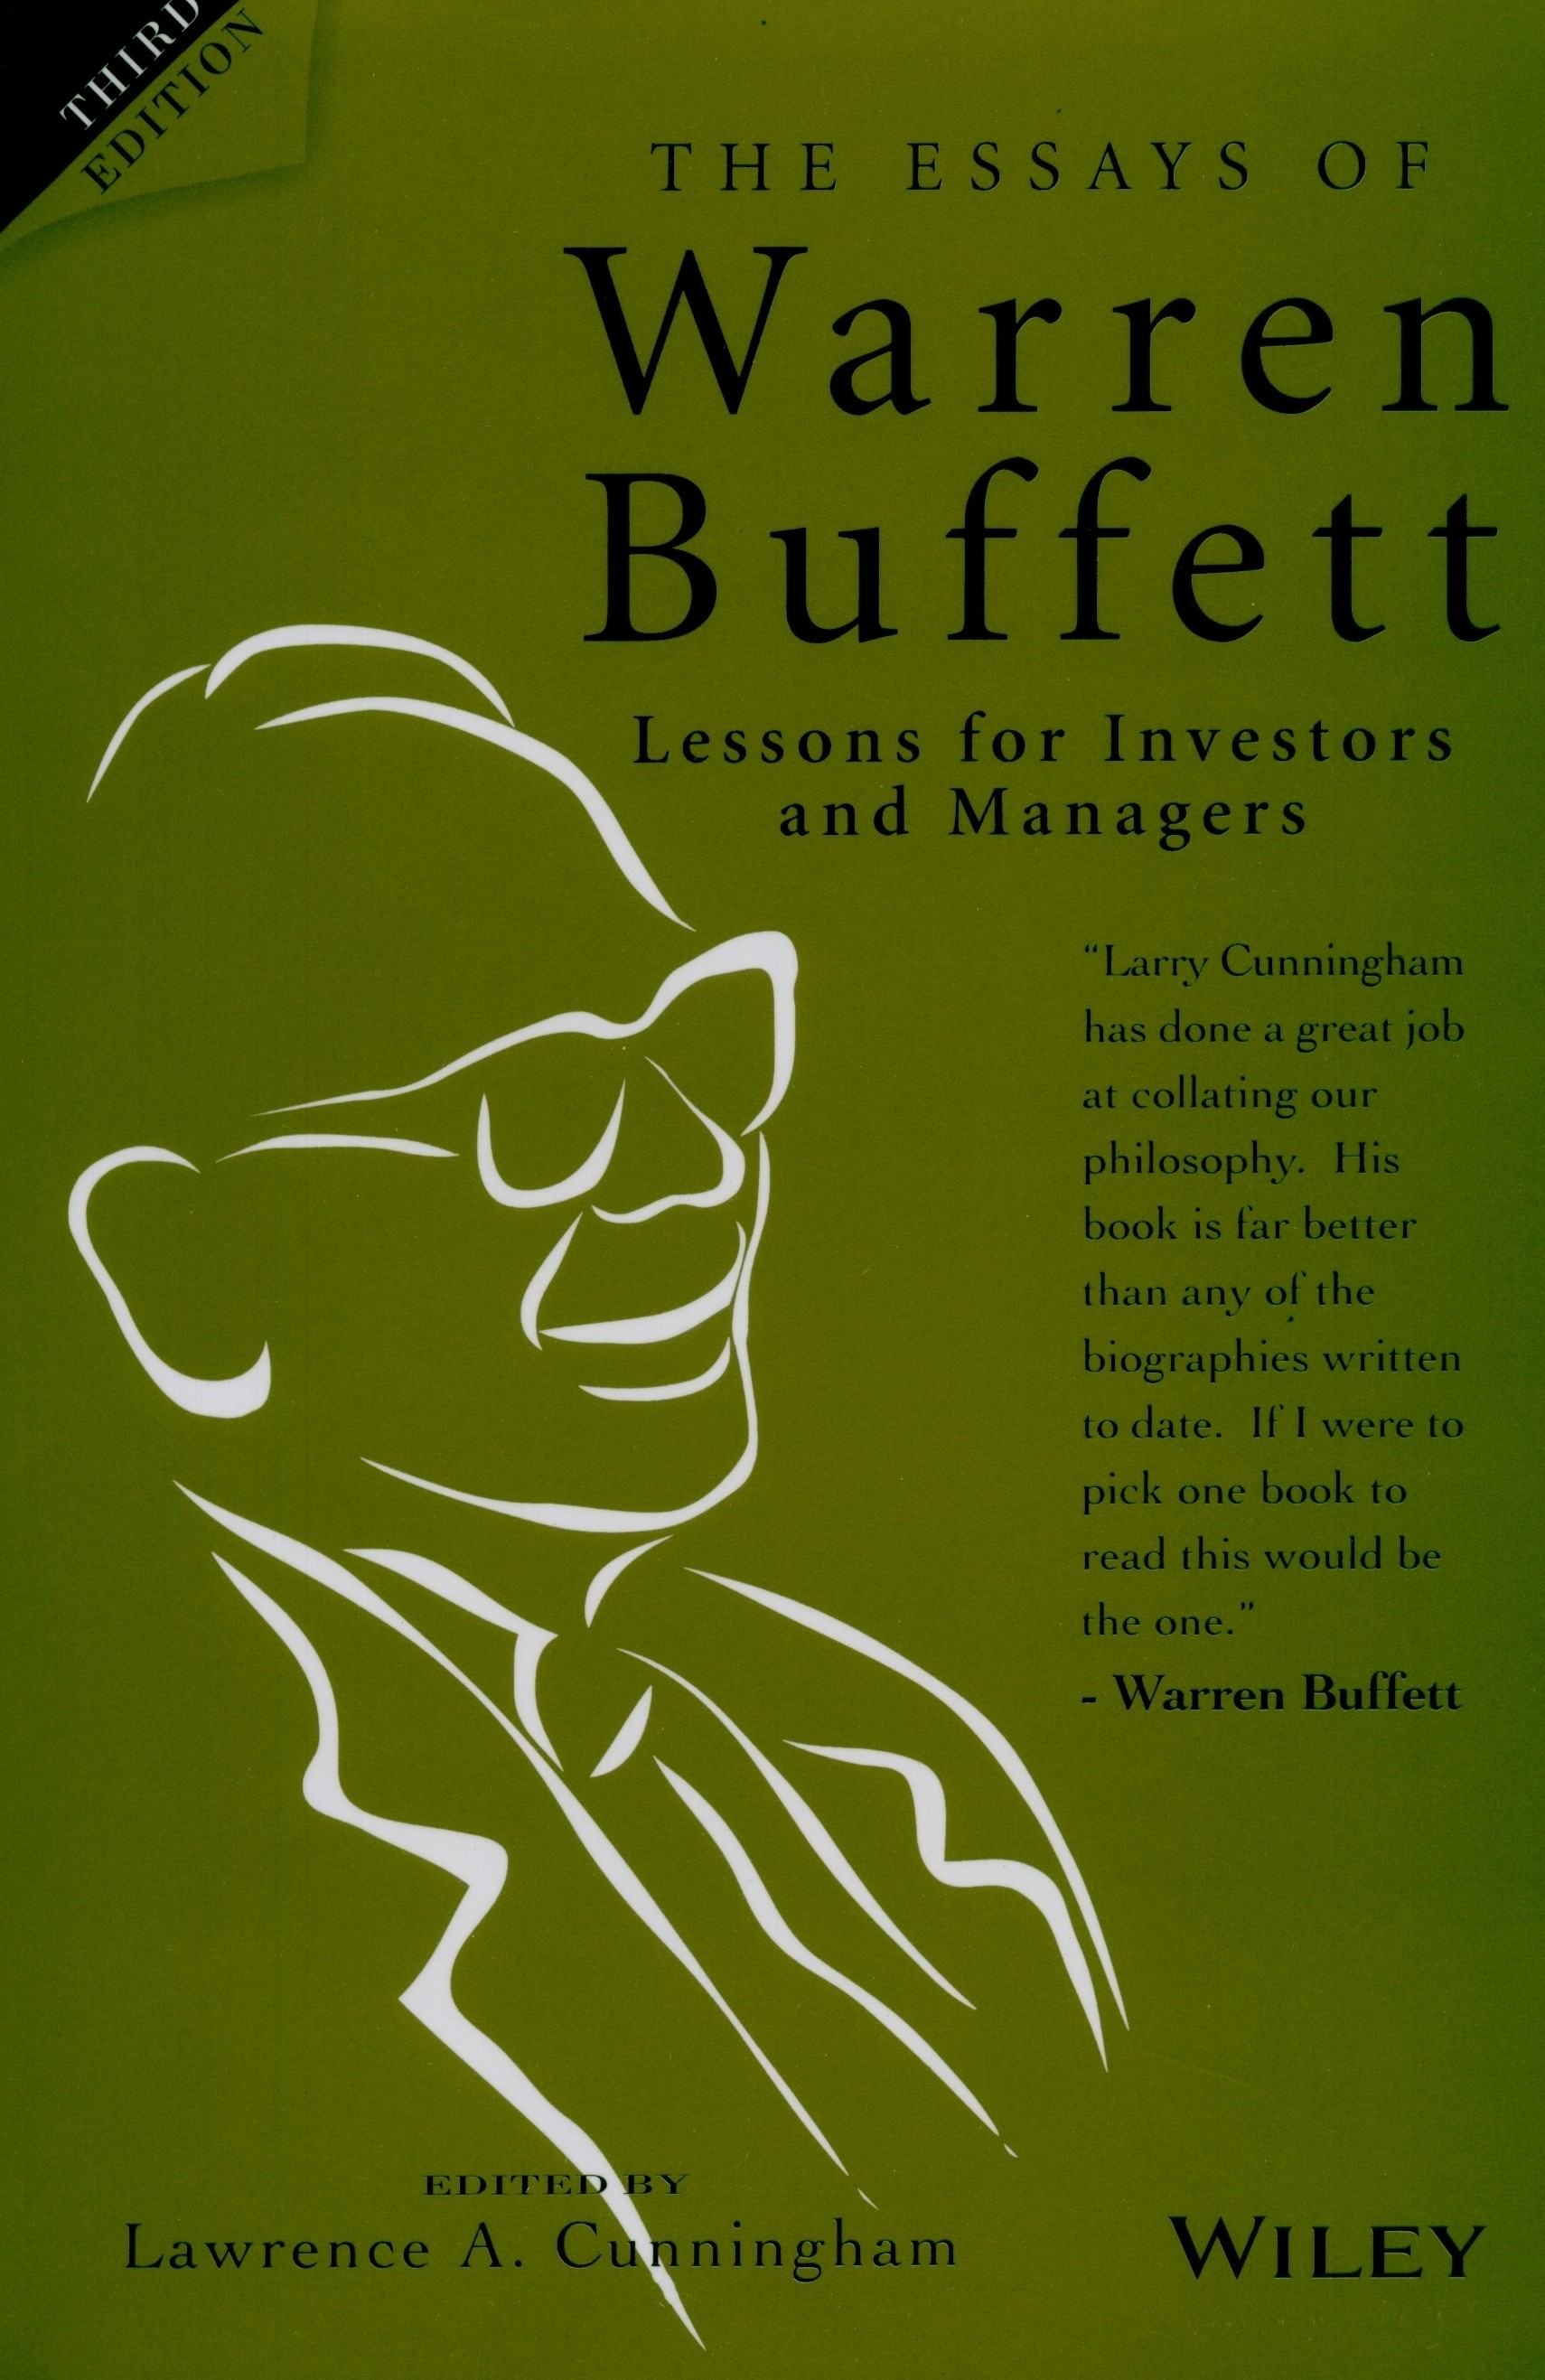 013 Essay Example The Essays Of Warren Buffett Lessons For Investors And Managers Original Striking 4th Edition Free Pdf Full